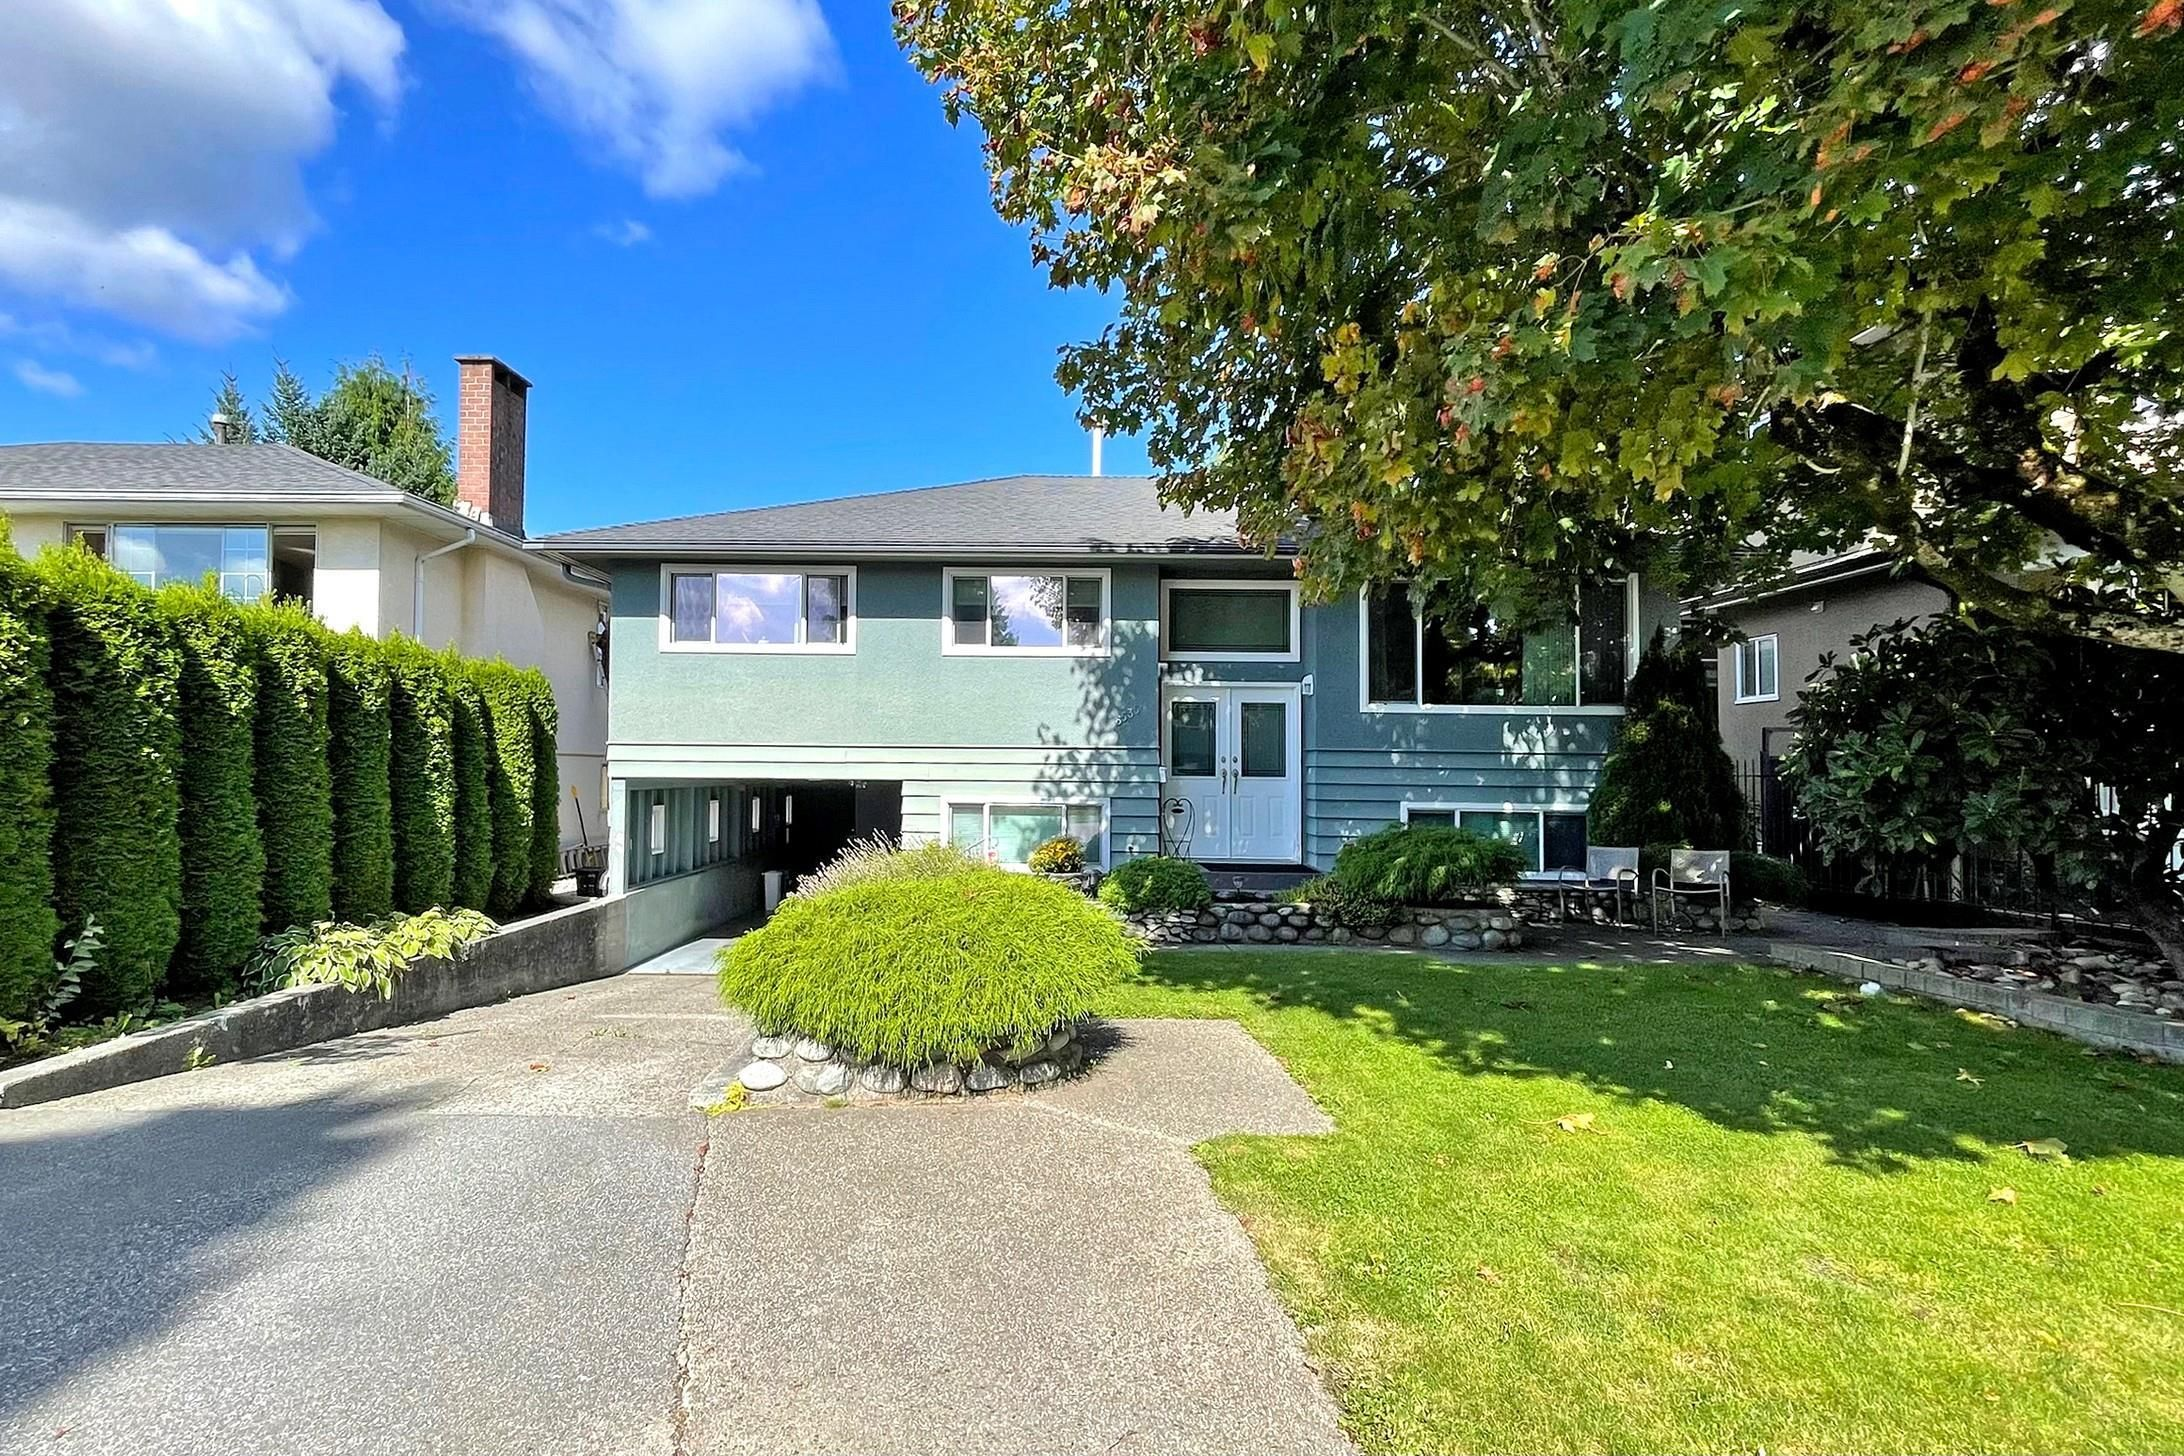 Main Photo: 6535 GEORGIA Street in Burnaby: Sperling-Duthie House for sale (Burnaby North)  : MLS®# R2618569